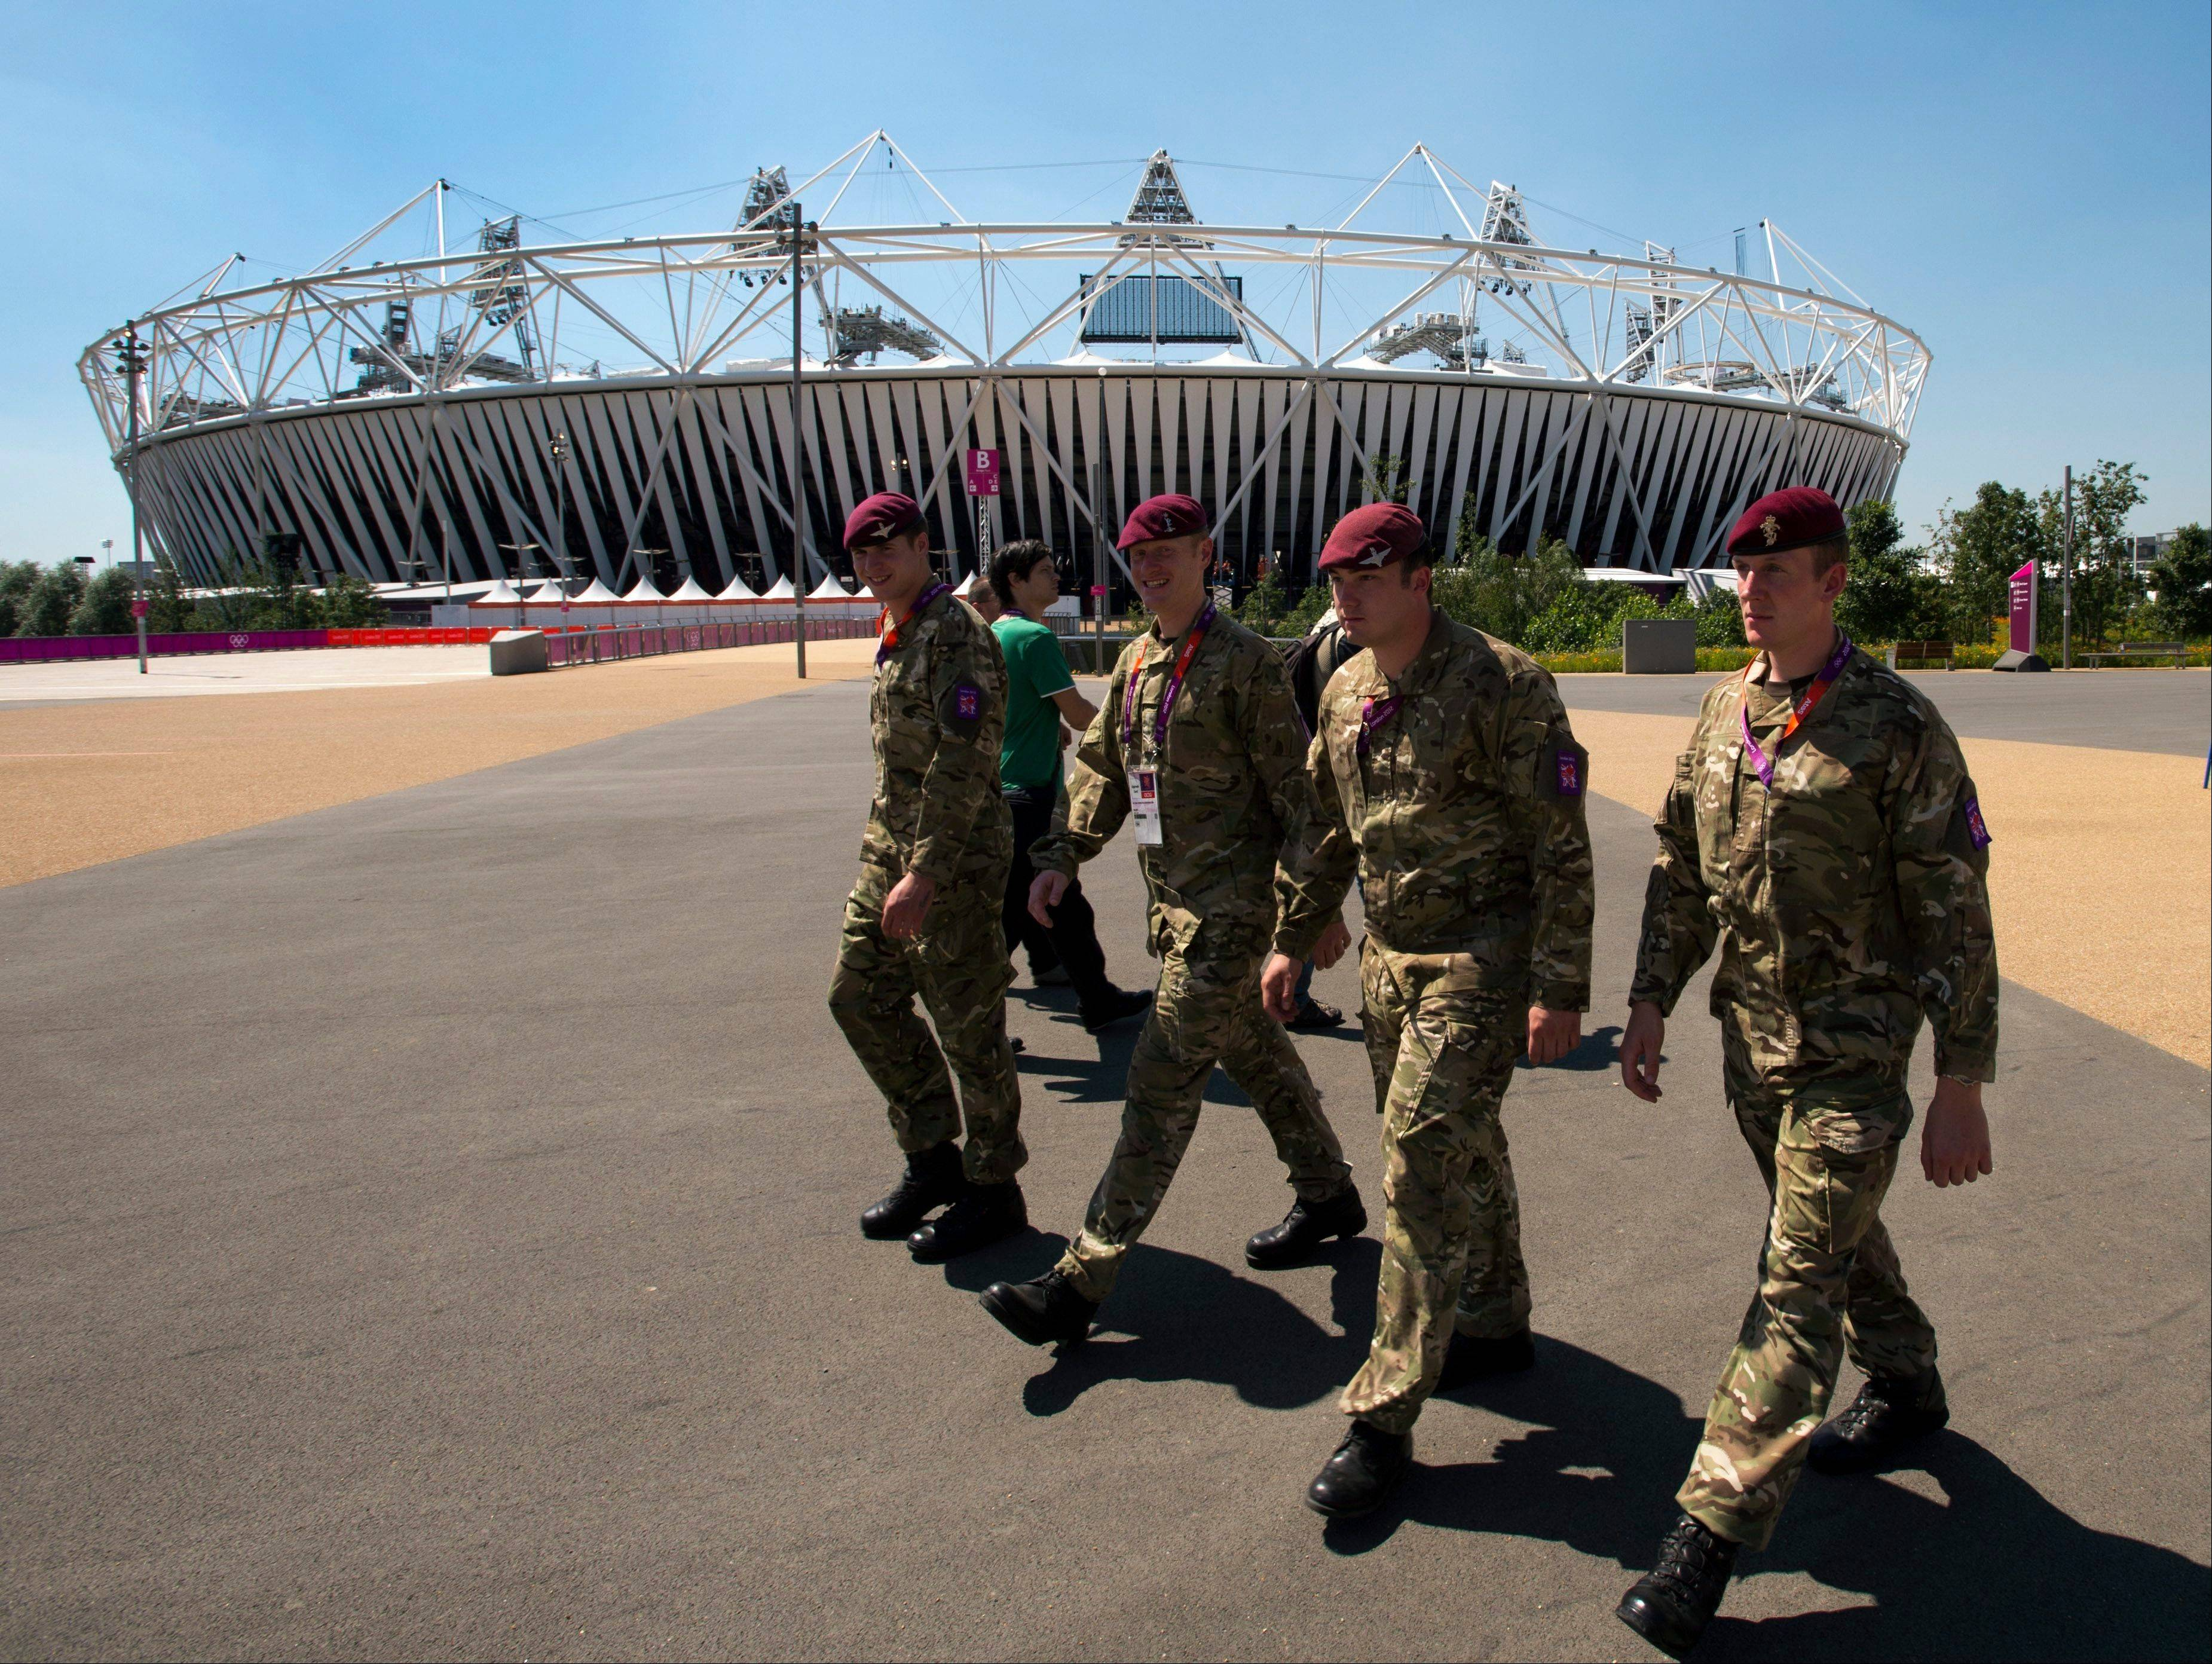 British soldiers walk past the Olympic stadium as preparations continue for the 2012 Summer Olympics earlier this week in London.